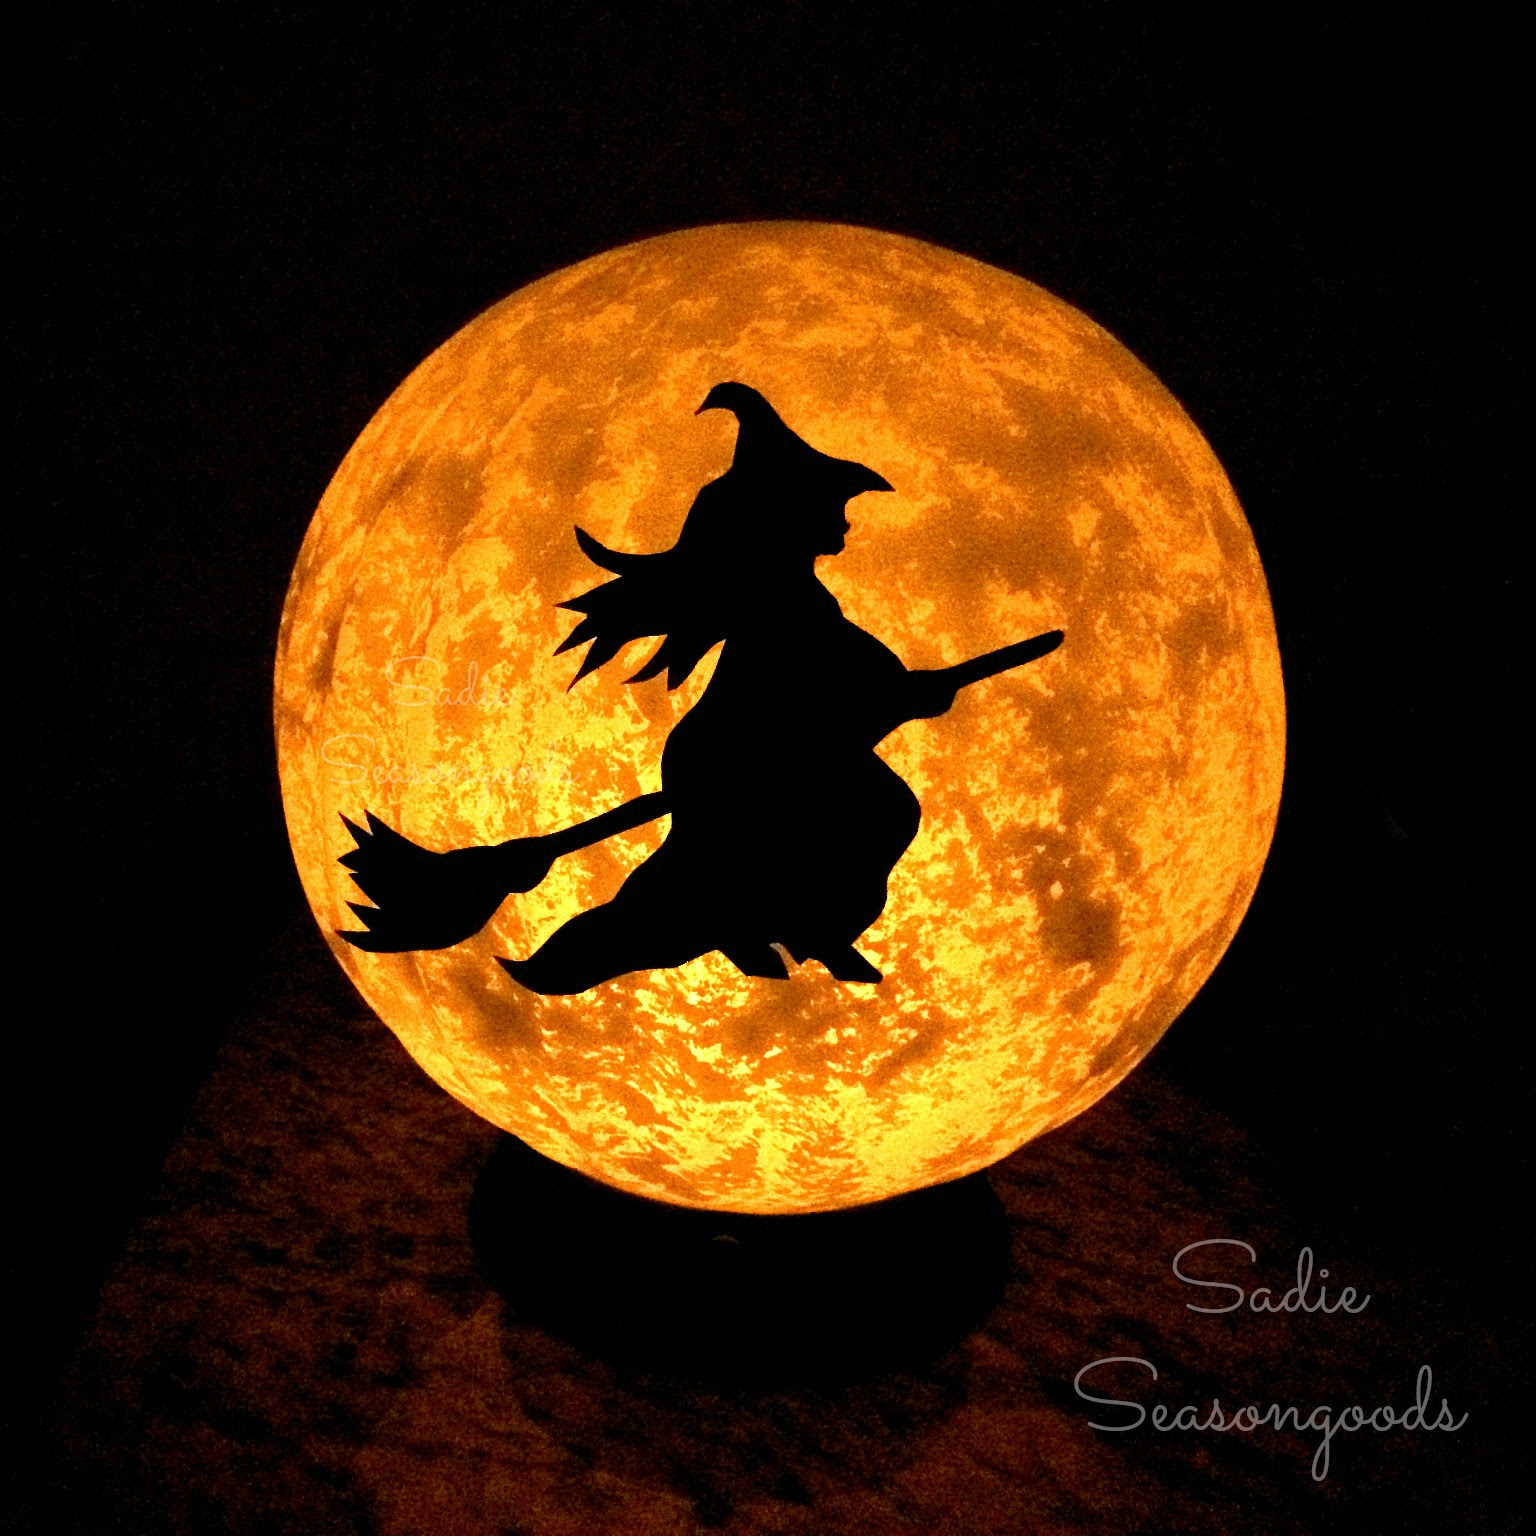 Vintage Light Fixture Halloween Moon - Sadie Seasongoods